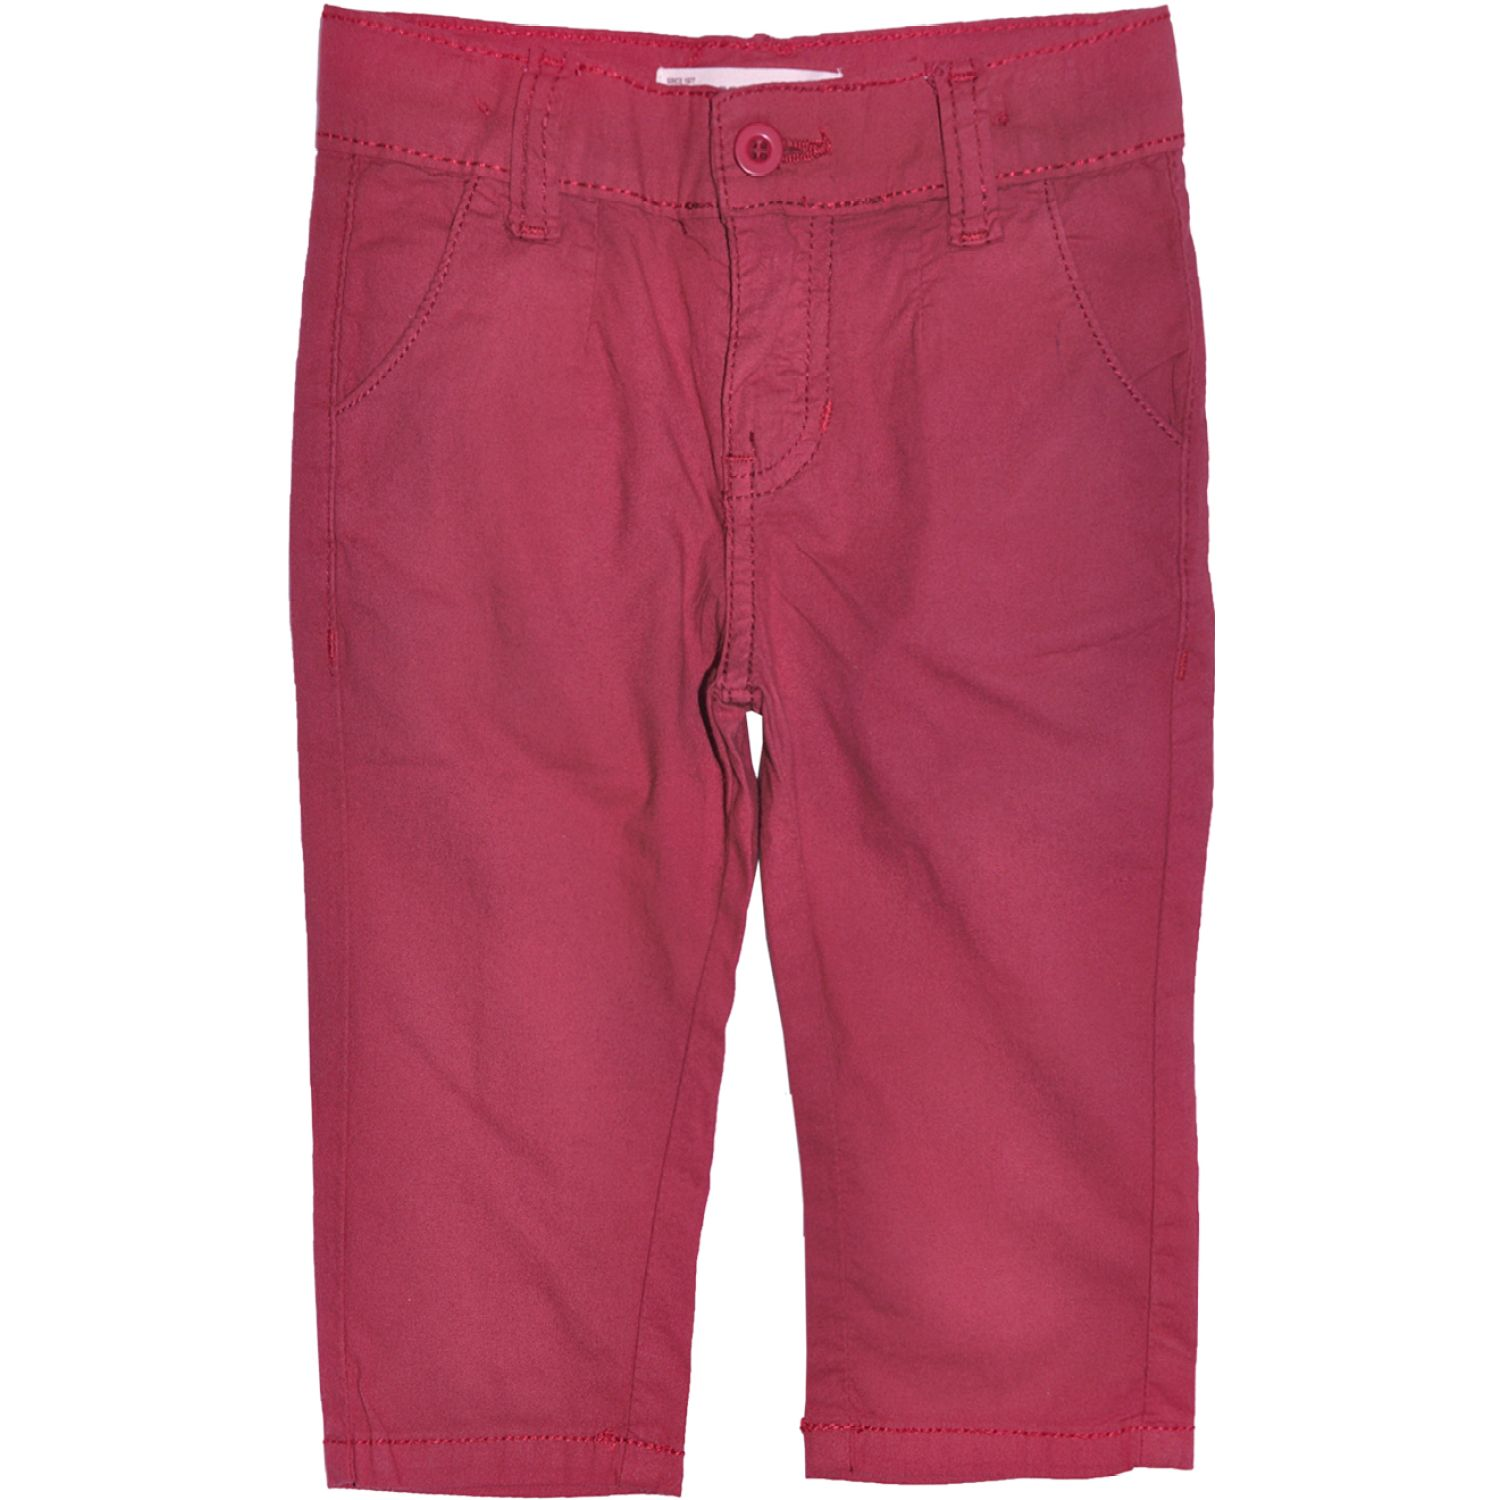 COTTONS JEANS Ruby Vino Pantalones